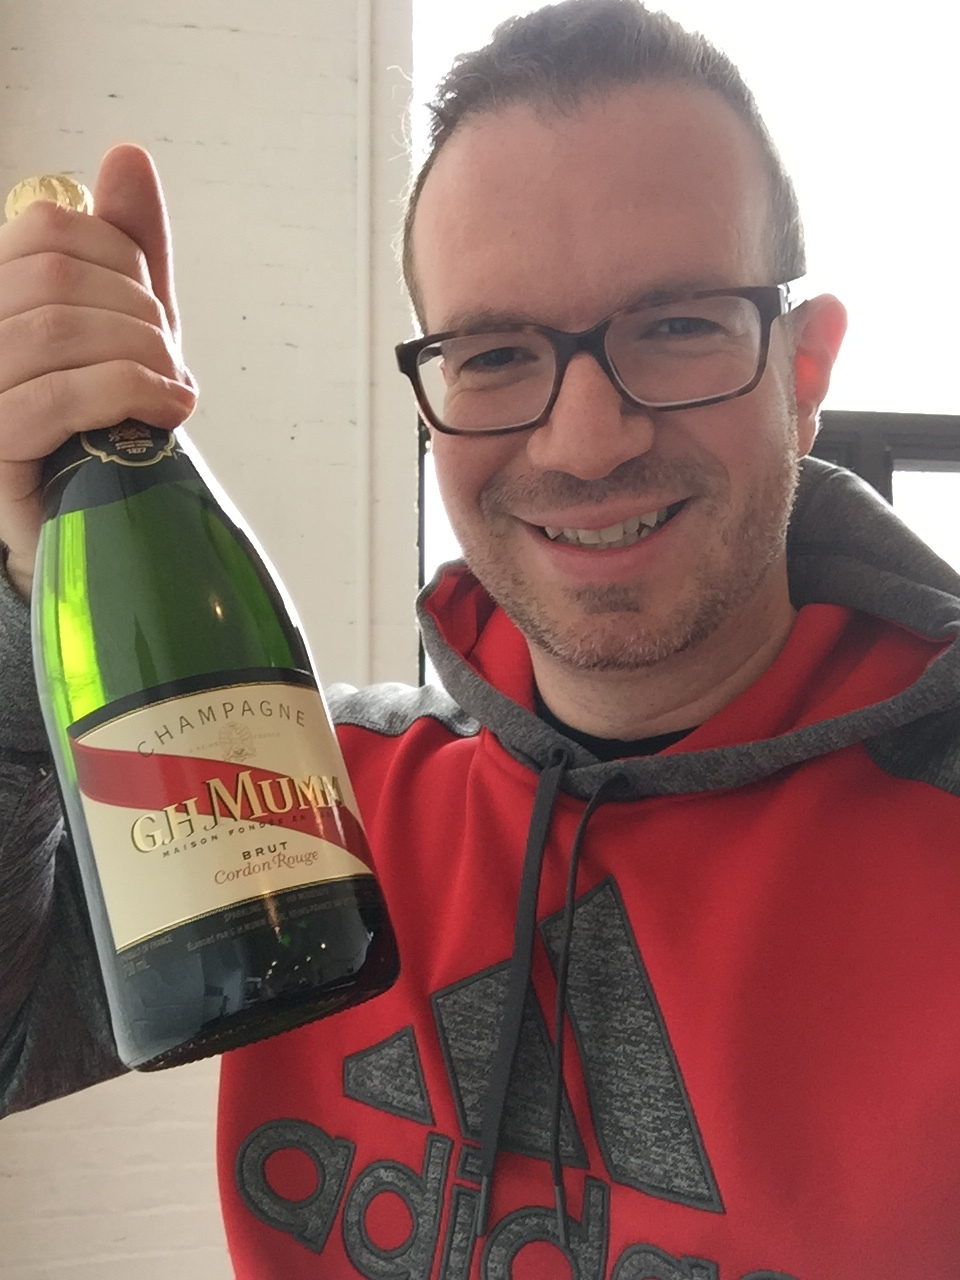 Celebrating wins with our friend GH Mumm